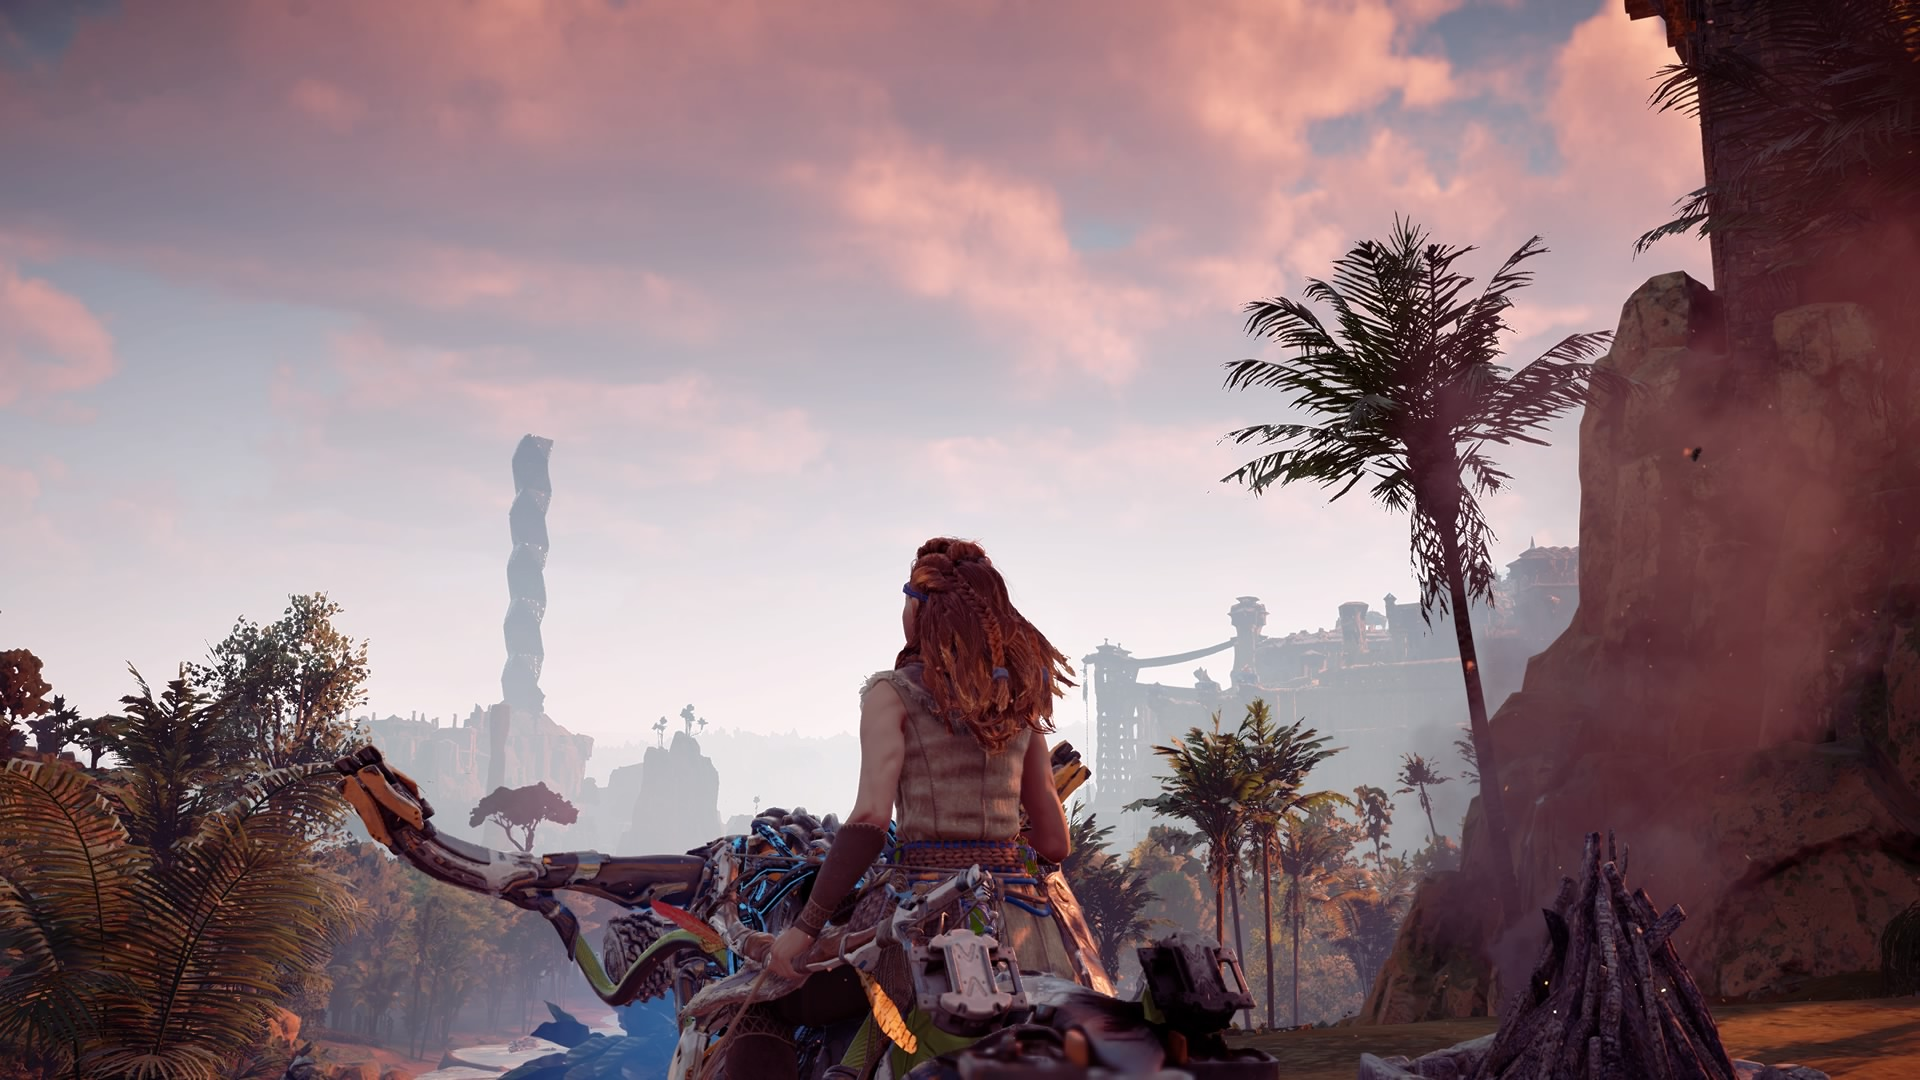 Video Game Review Horizon Zero Dawn The Young Folks Sony Playstation 4 Reg 3 Hey Before We Do This How Mad Must Have Been When Breath Of Wilds Release Date Was Confirmed Fact That Two Major Exclusives With Incredibly